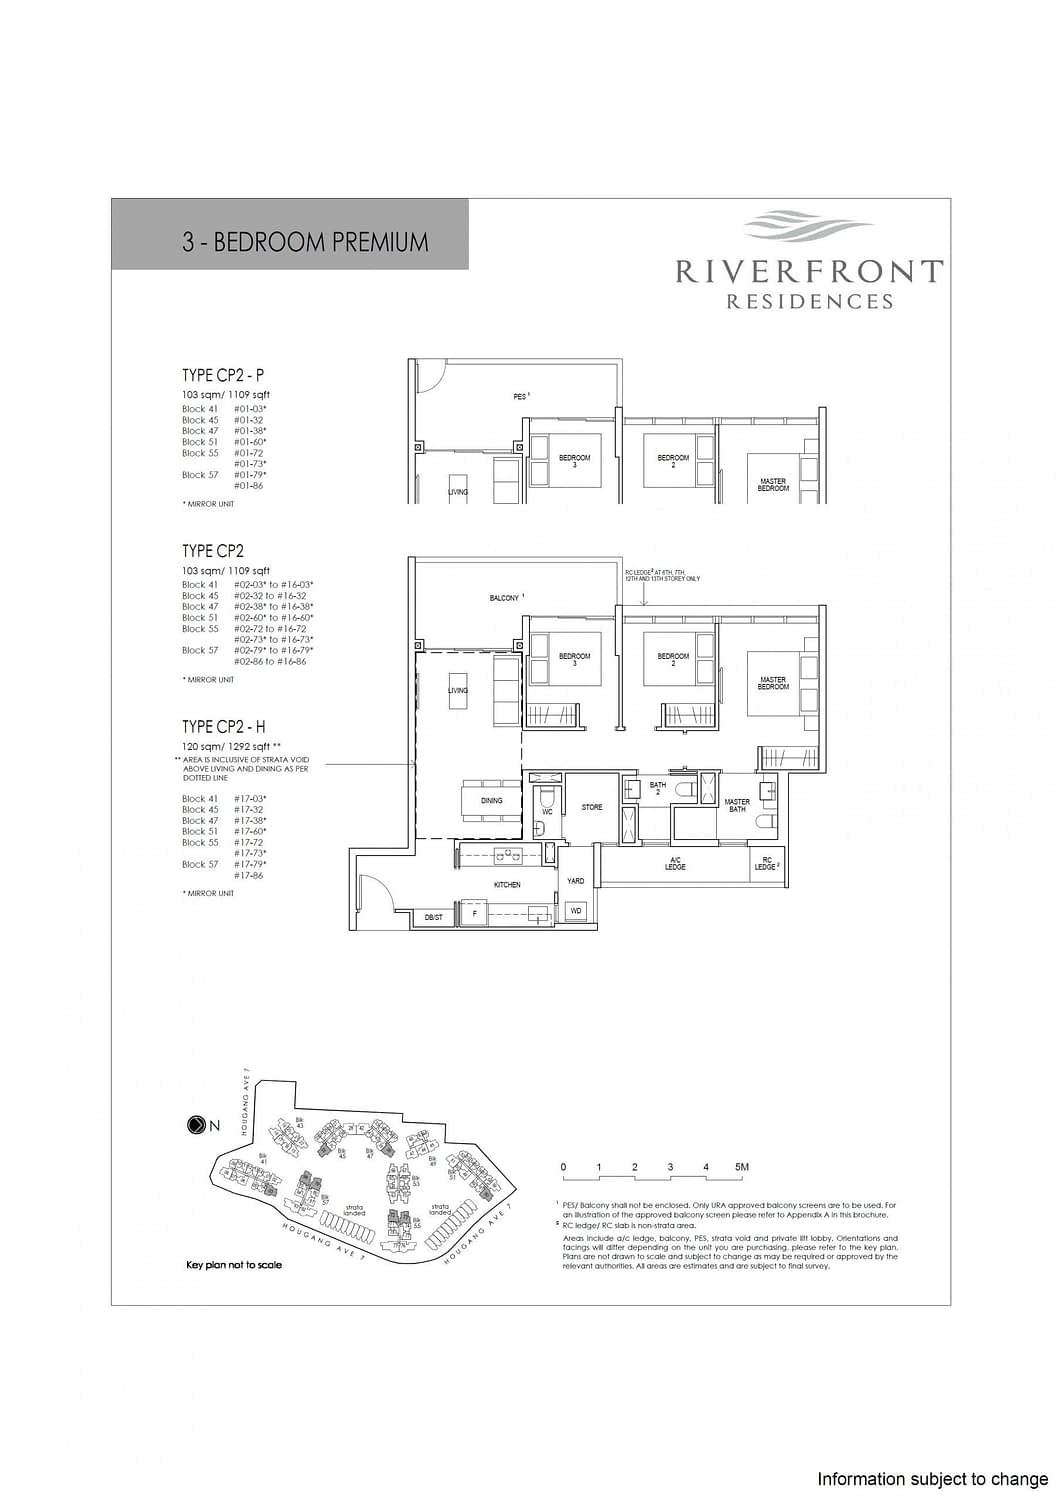 Riverfront Residences Riverfront Residences Floorplan CP2 P scaled